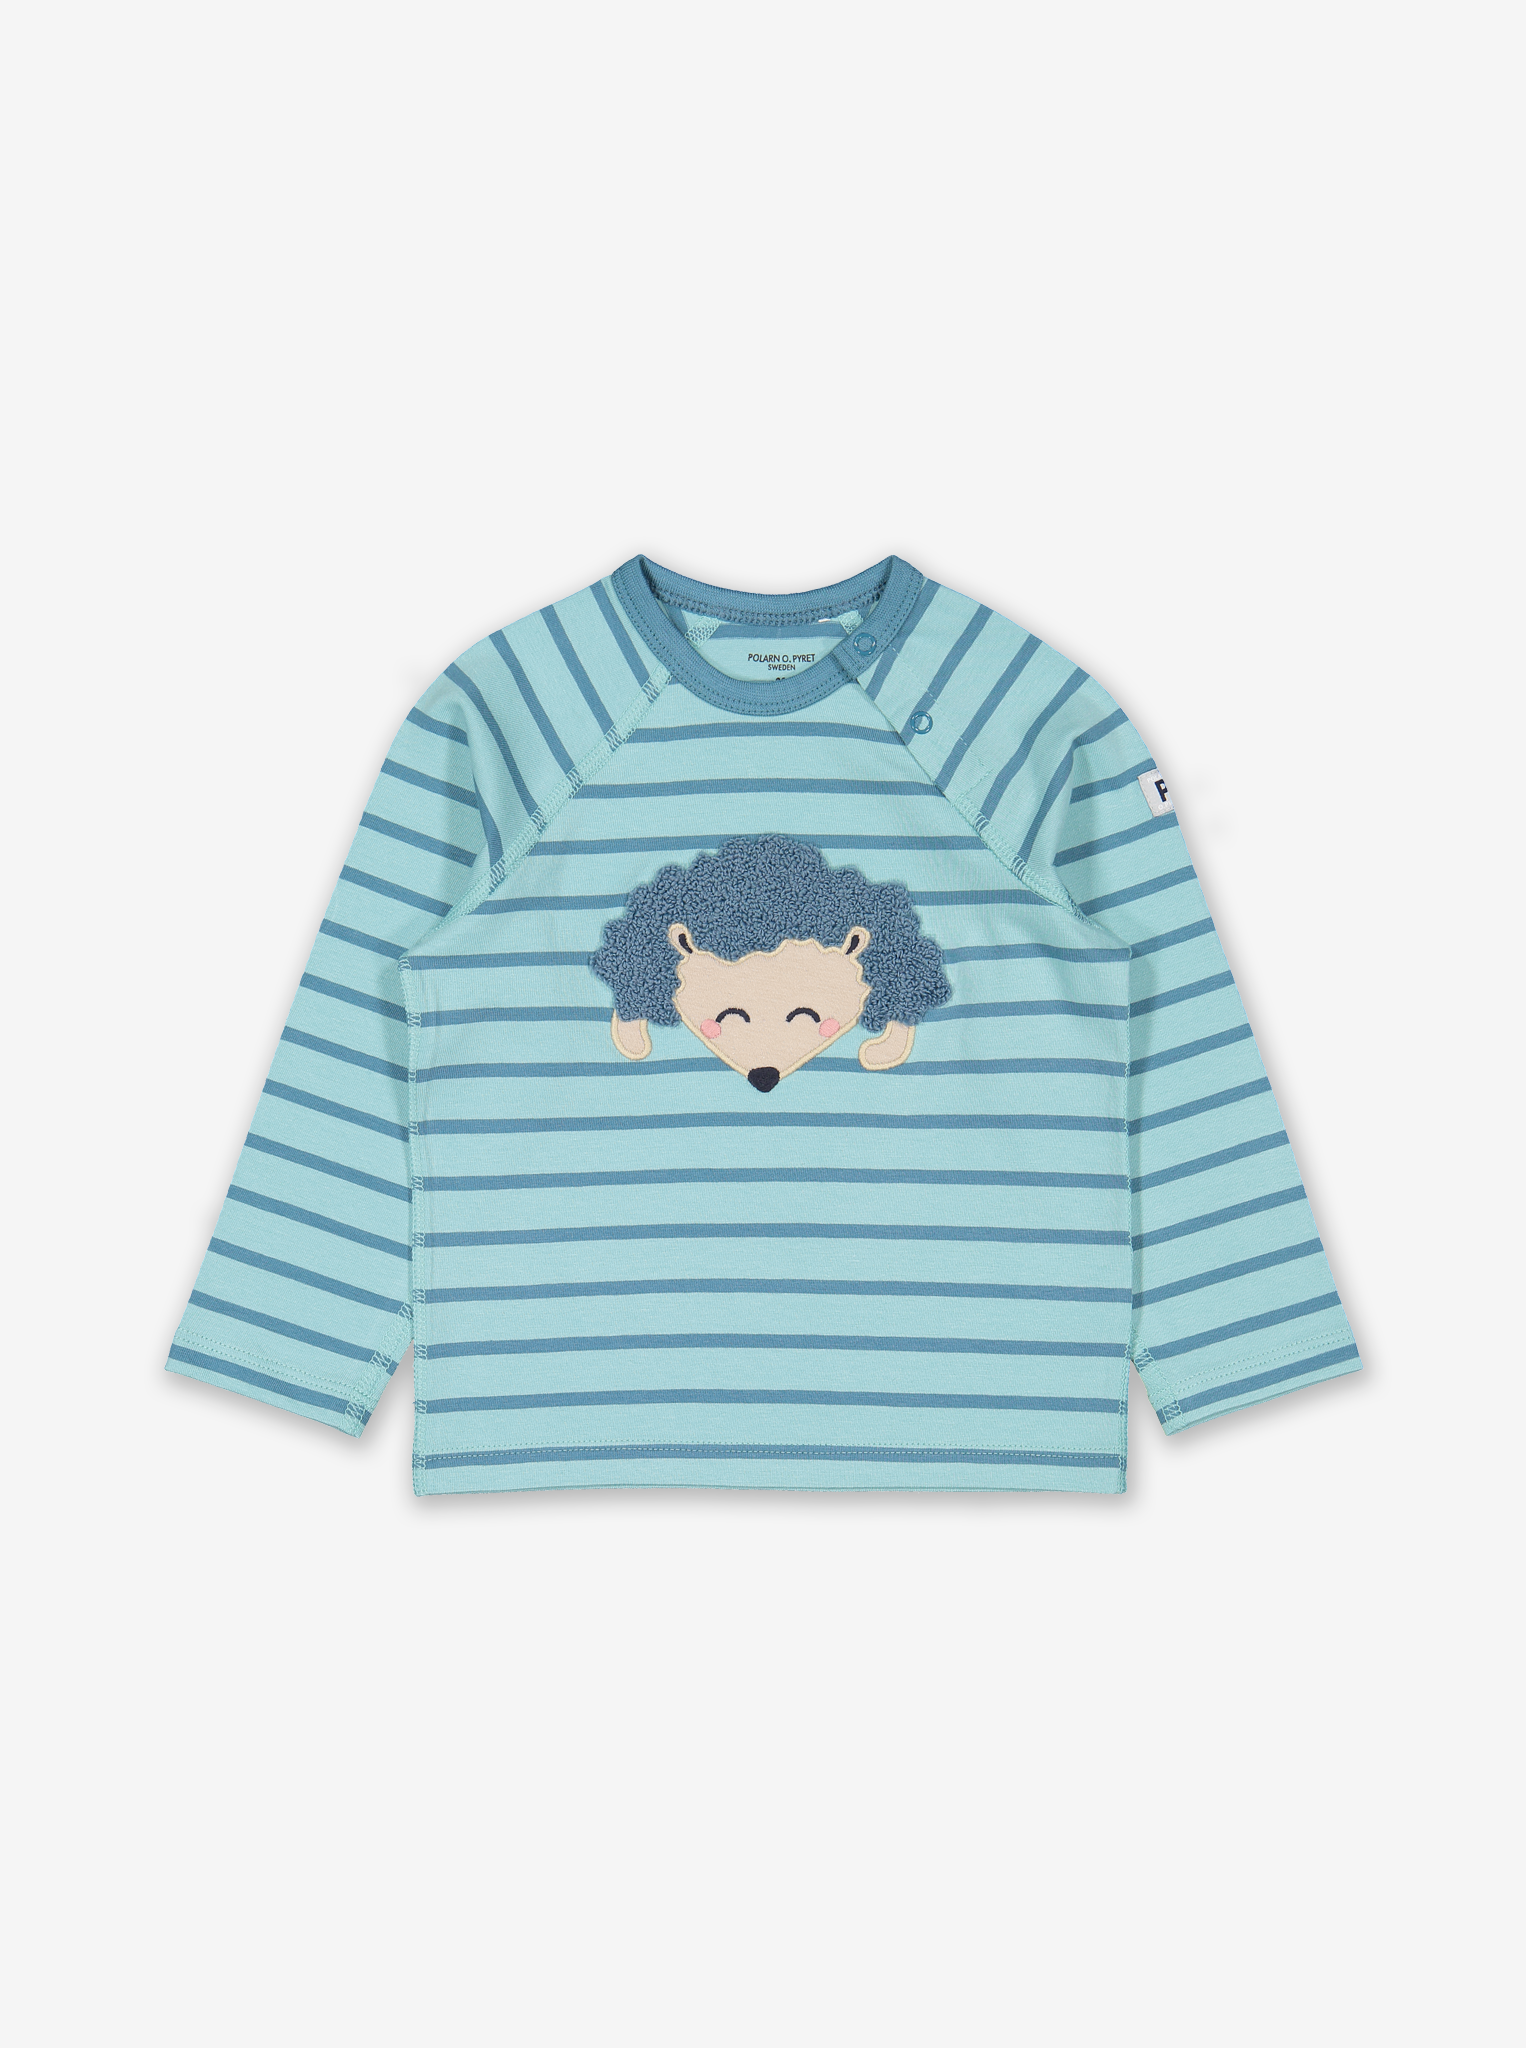 Appliqu㉠Hedgehog Baby Top Natural